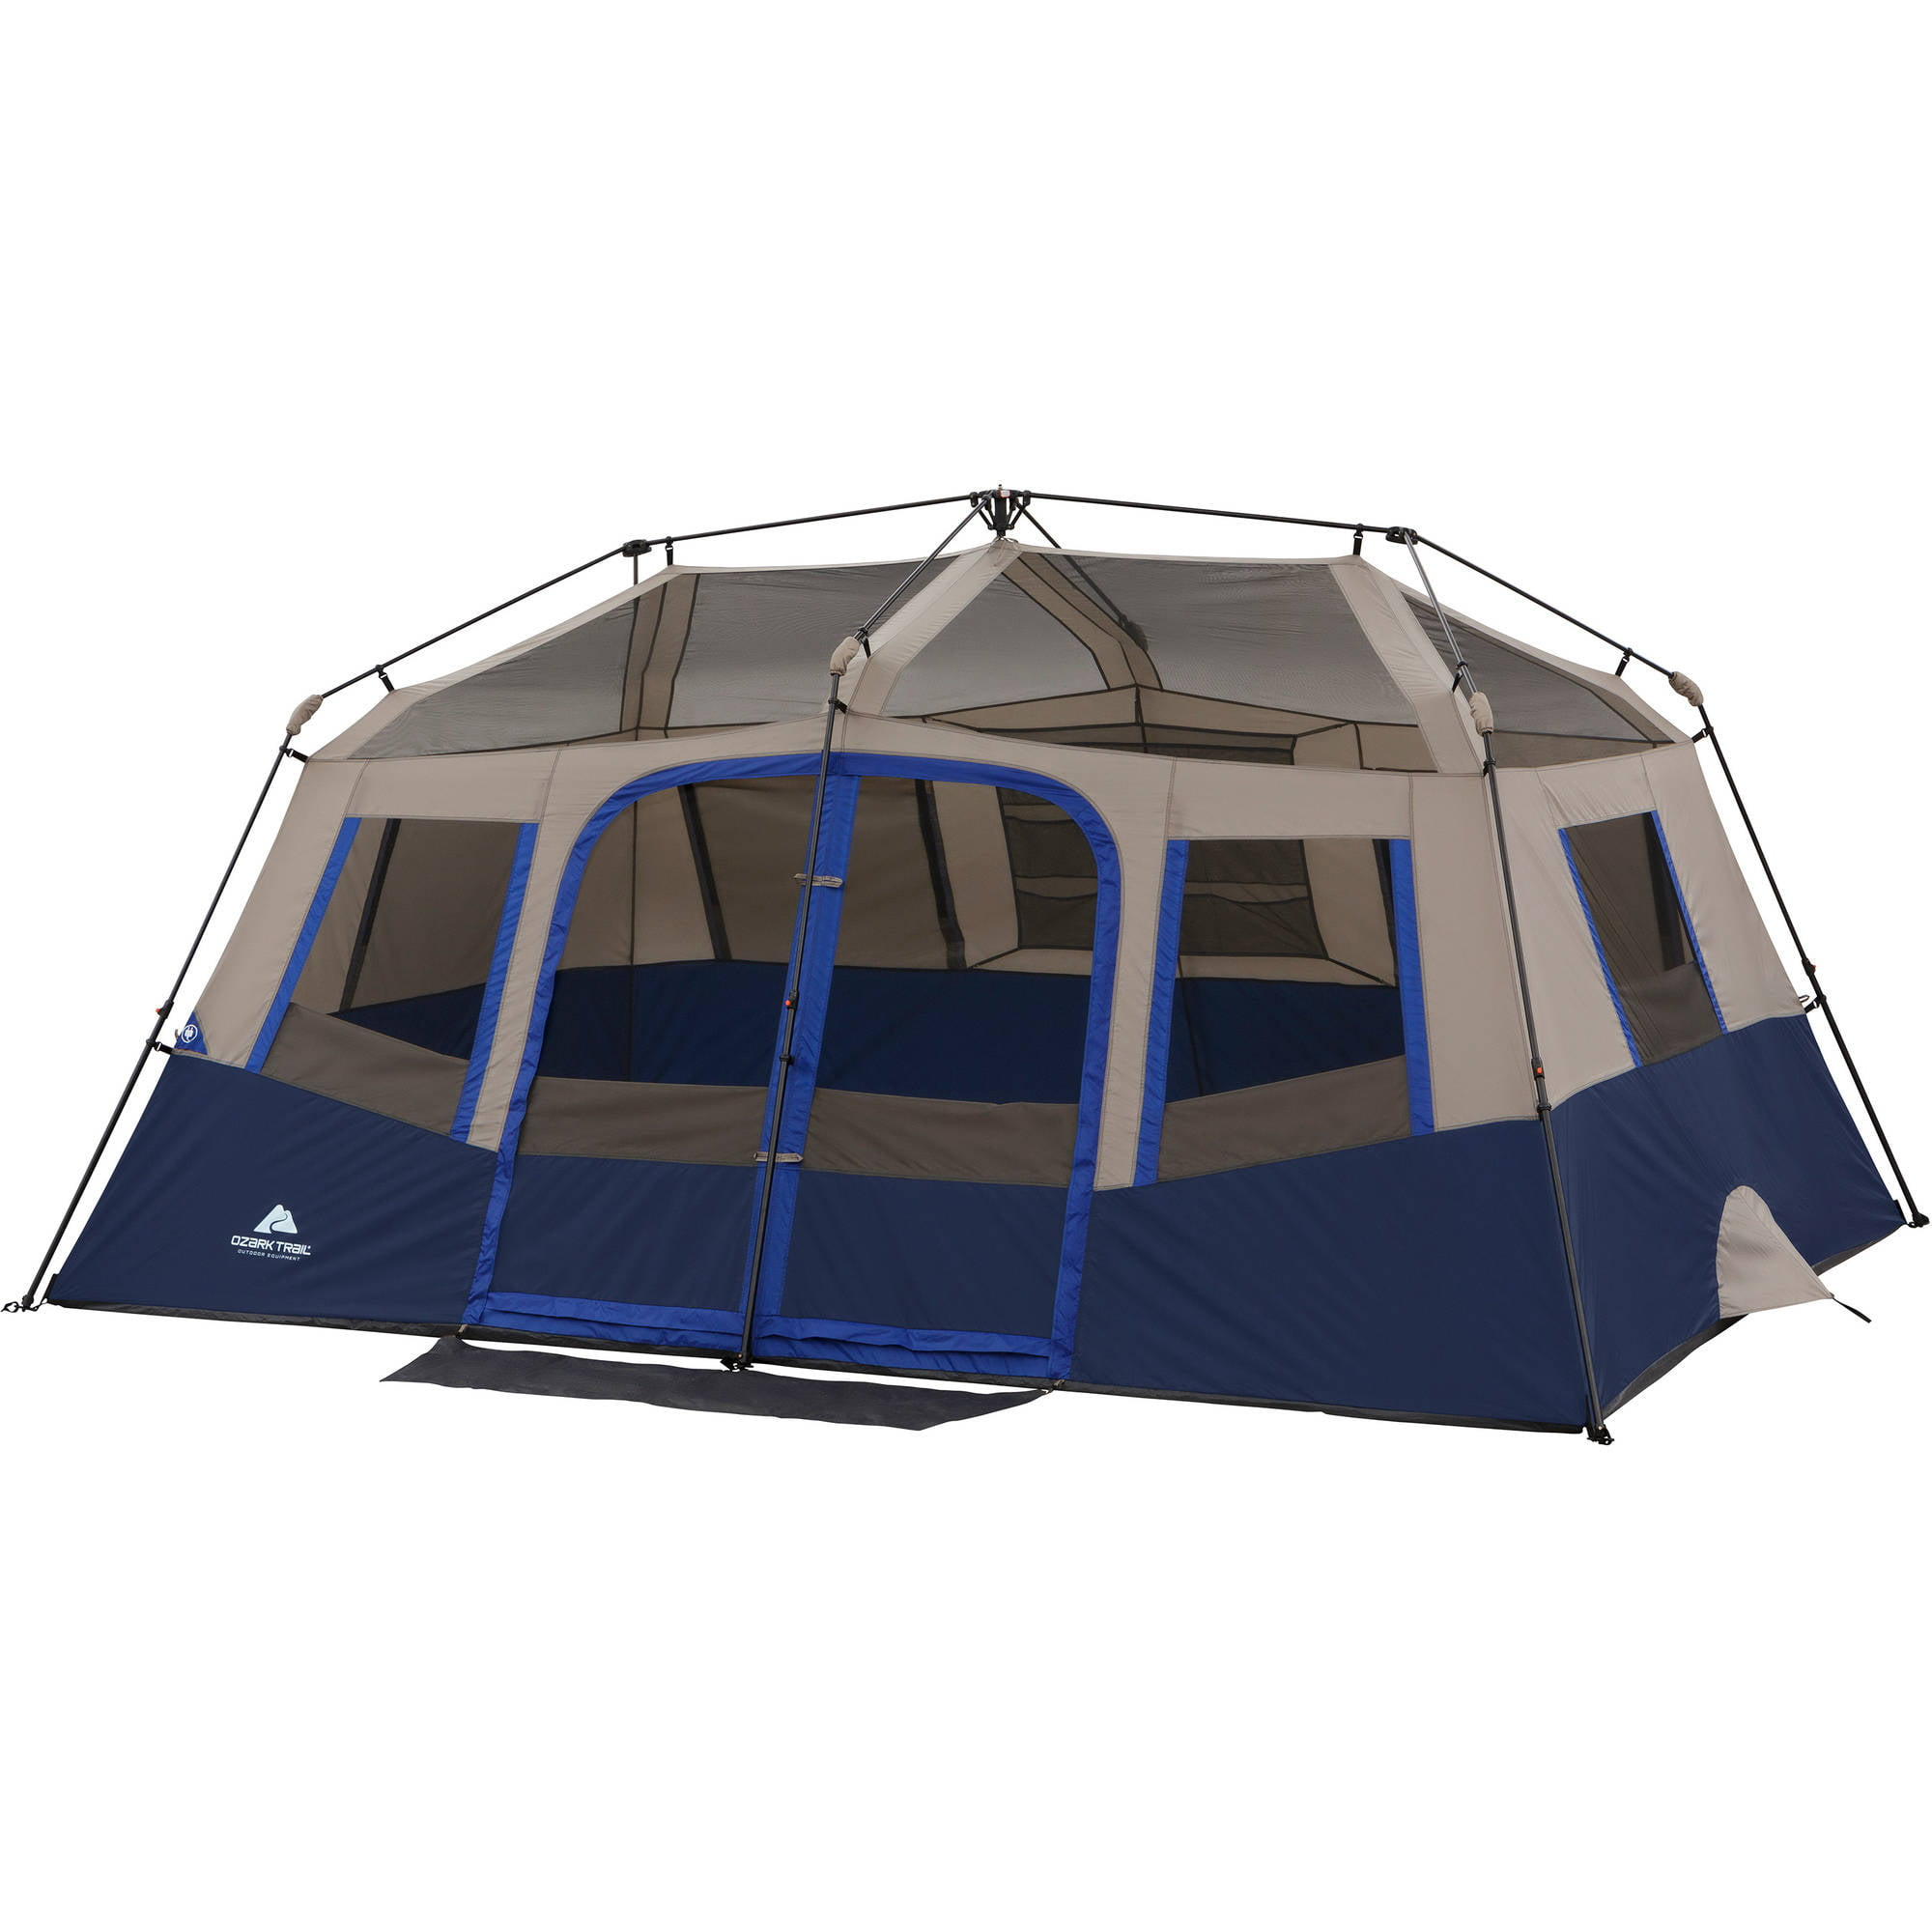 Ozark Trail 10 Person 2 Room Instant Cabin Tent Ebay